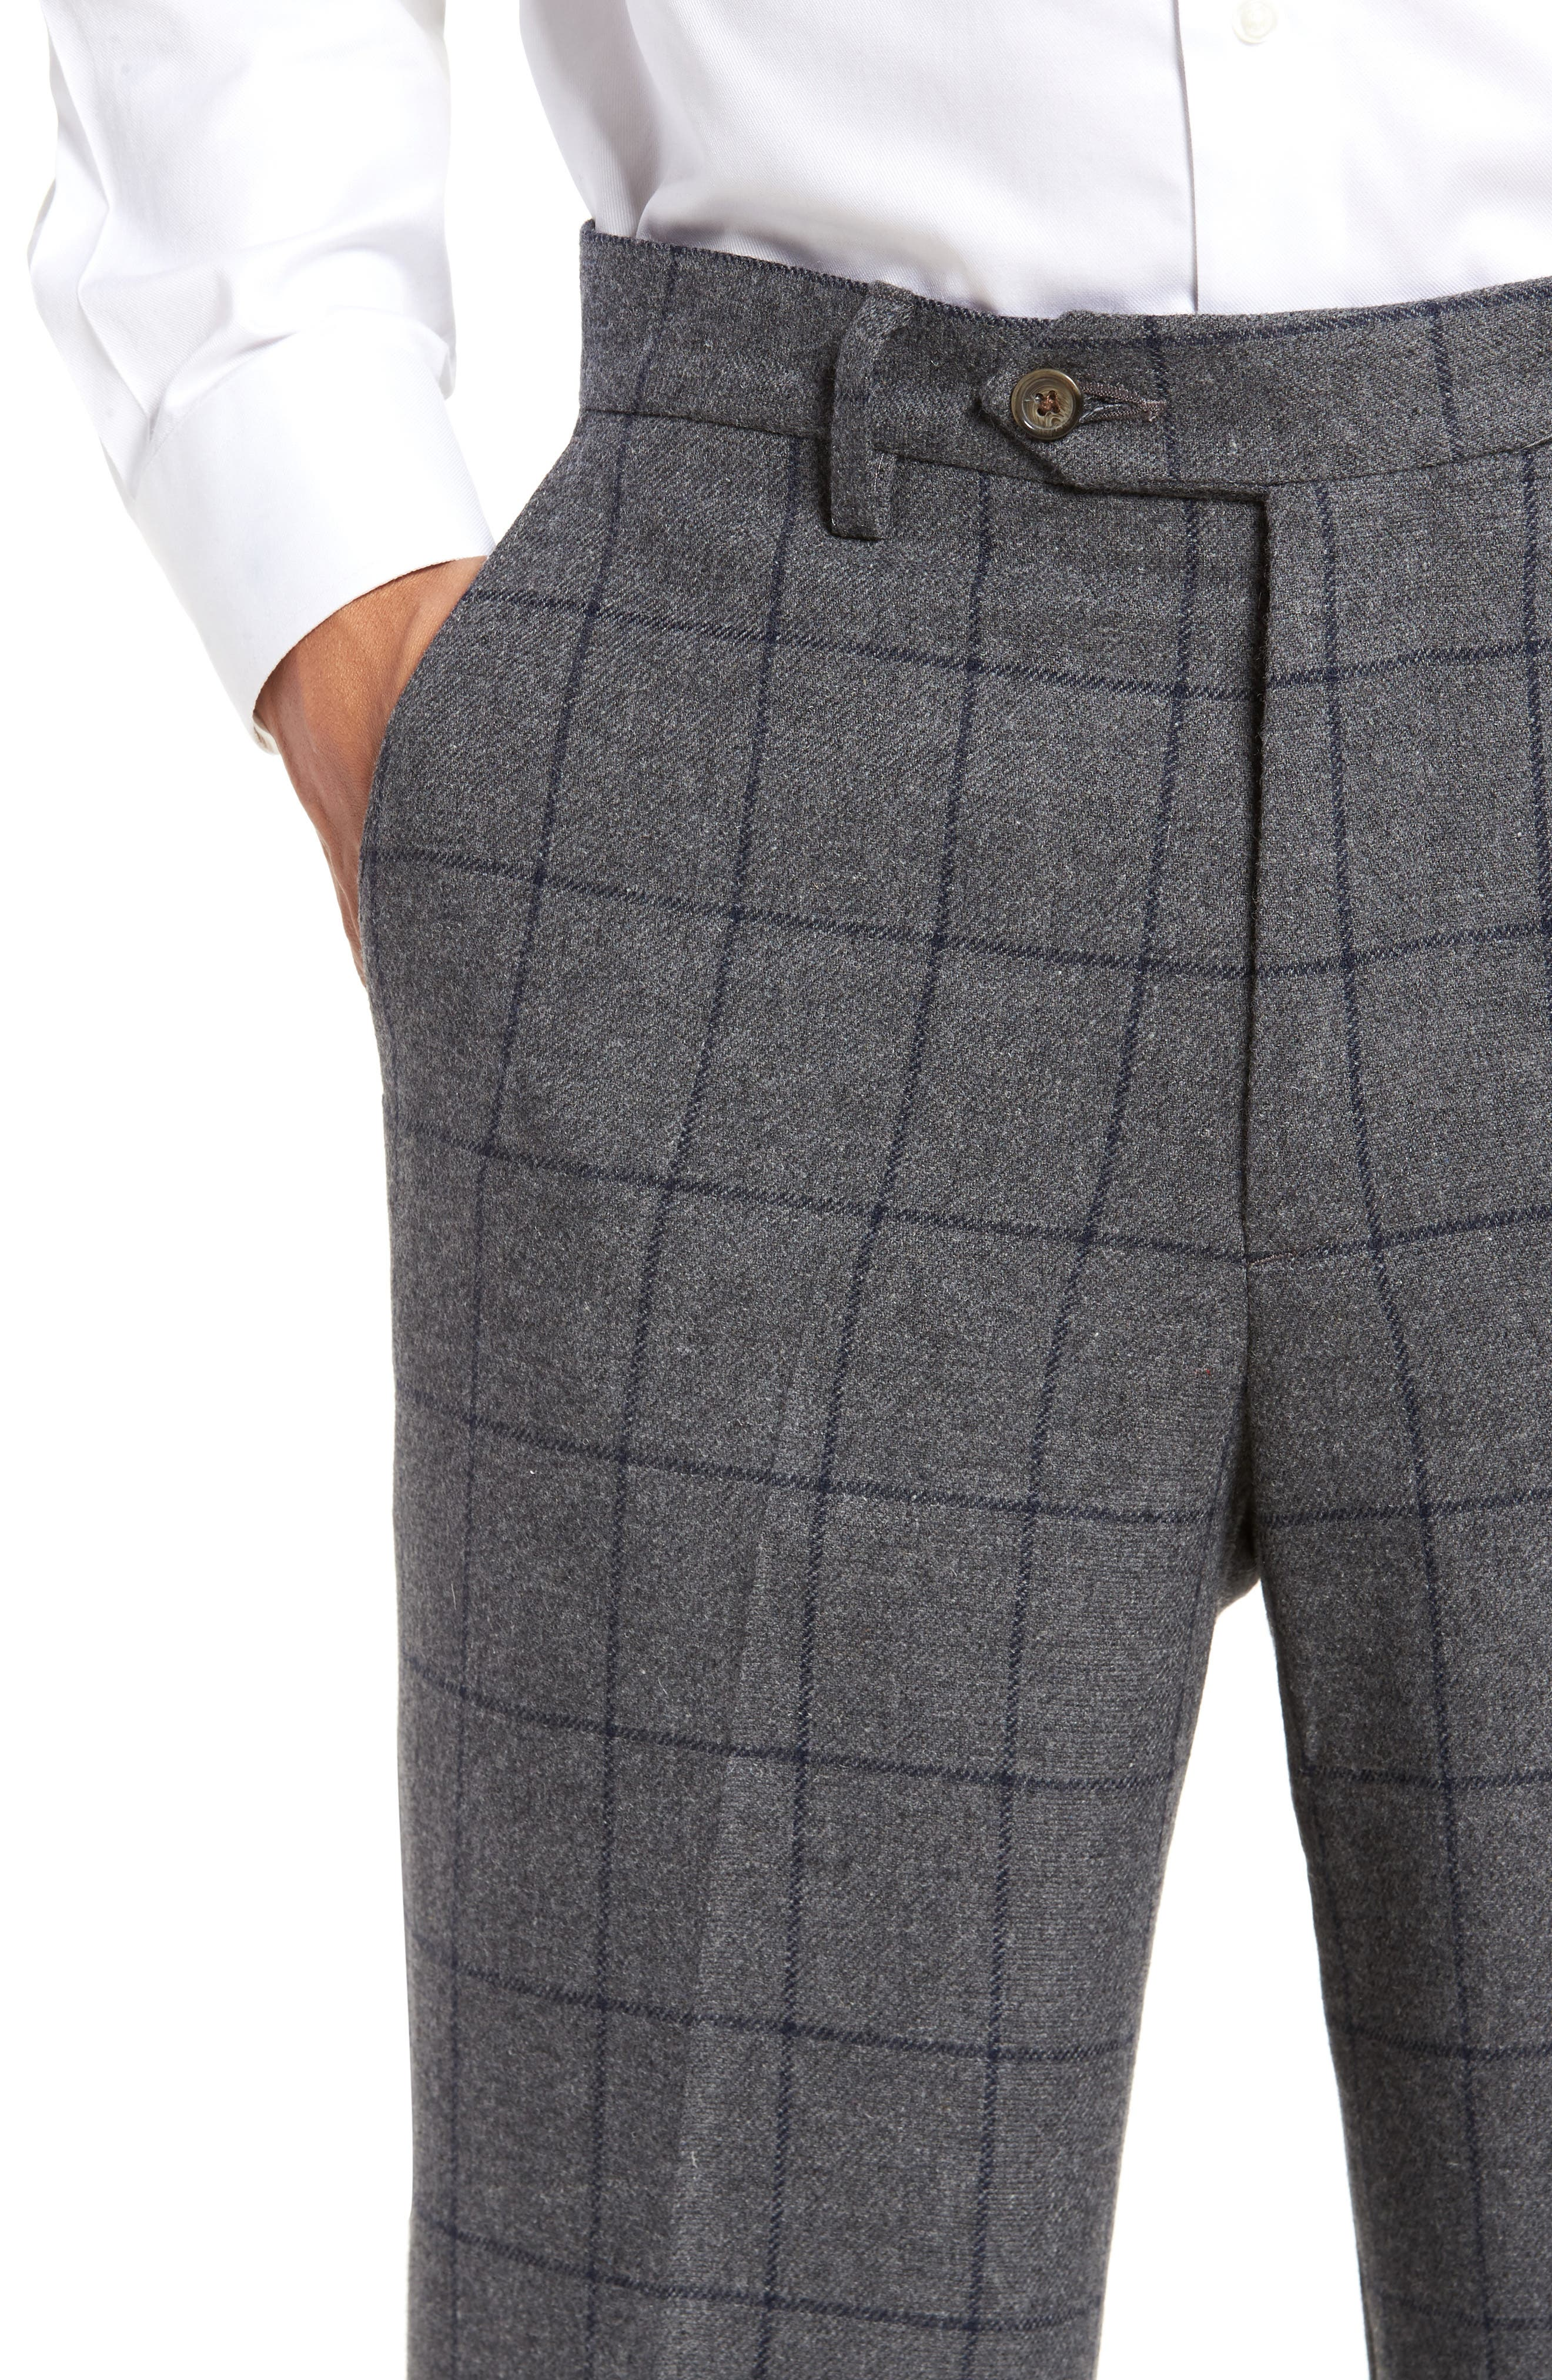 Flat Front Windowpane Wool Blend Trousers,                             Alternate thumbnail 4, color,                             Grey